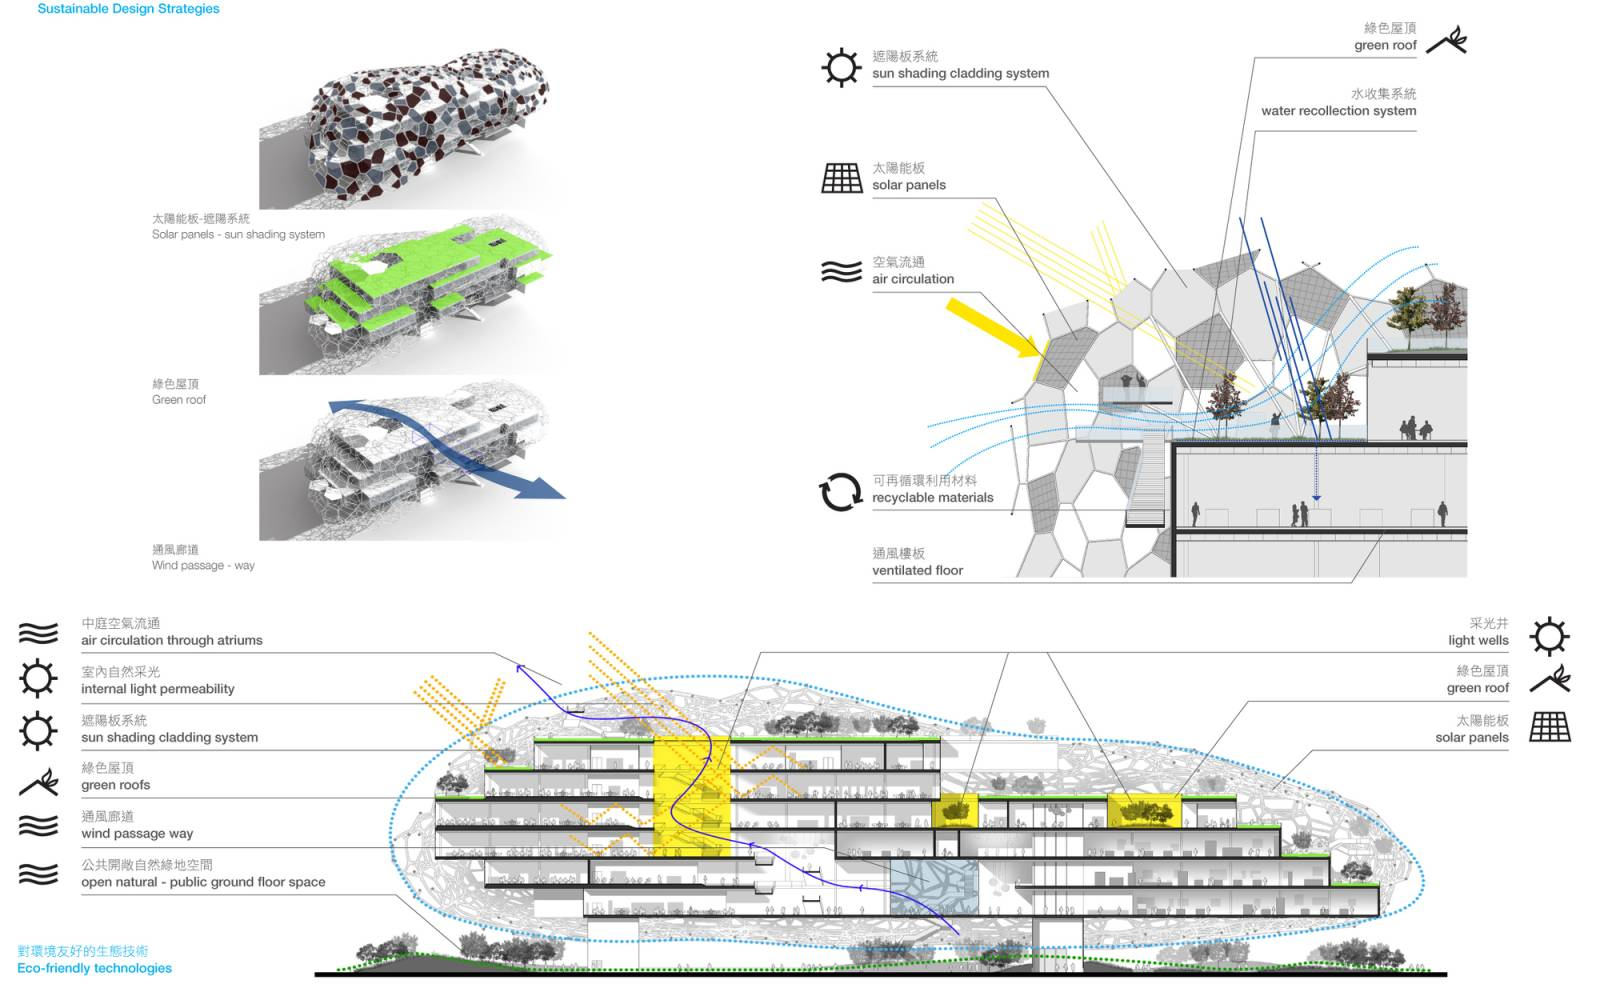 Water Cooler Wiring Diagrams Taichung City Cultural Center Competition Entry By Rmjm